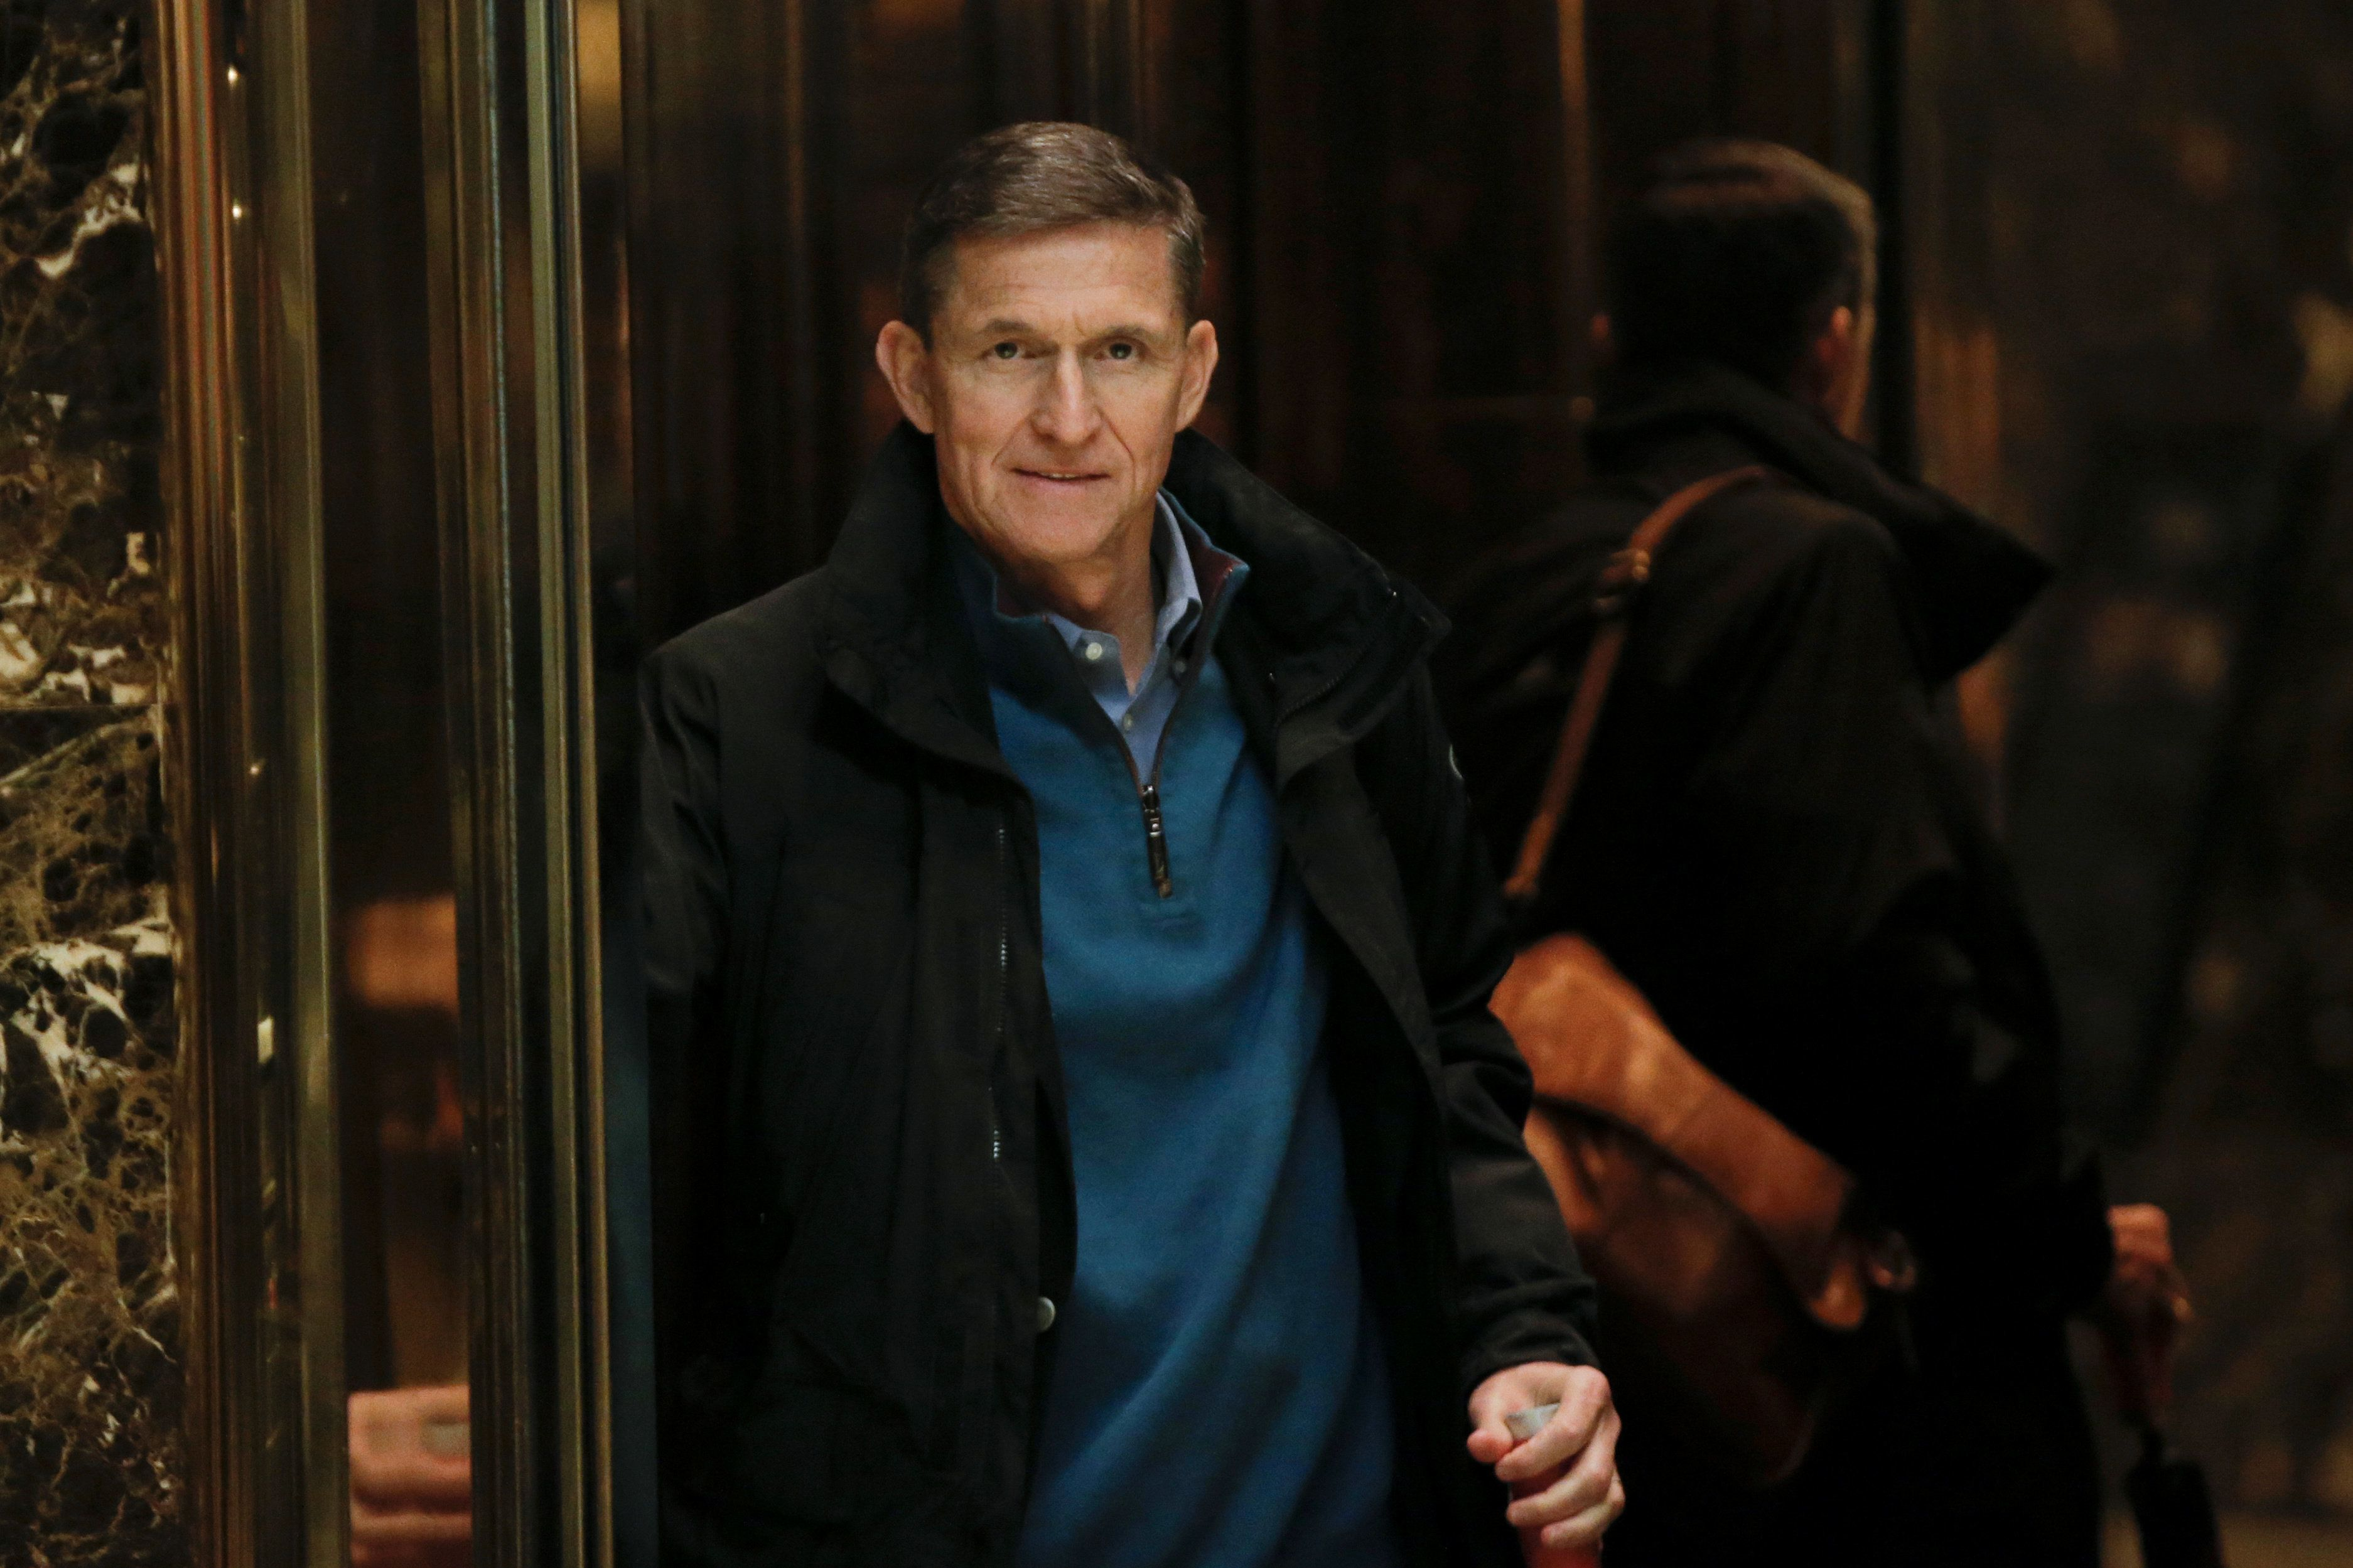 Retired Lt. Gen. Michael Flynn boards an elevator as he arrives at Trump Tower in New York City on Nov. 29, 2016.